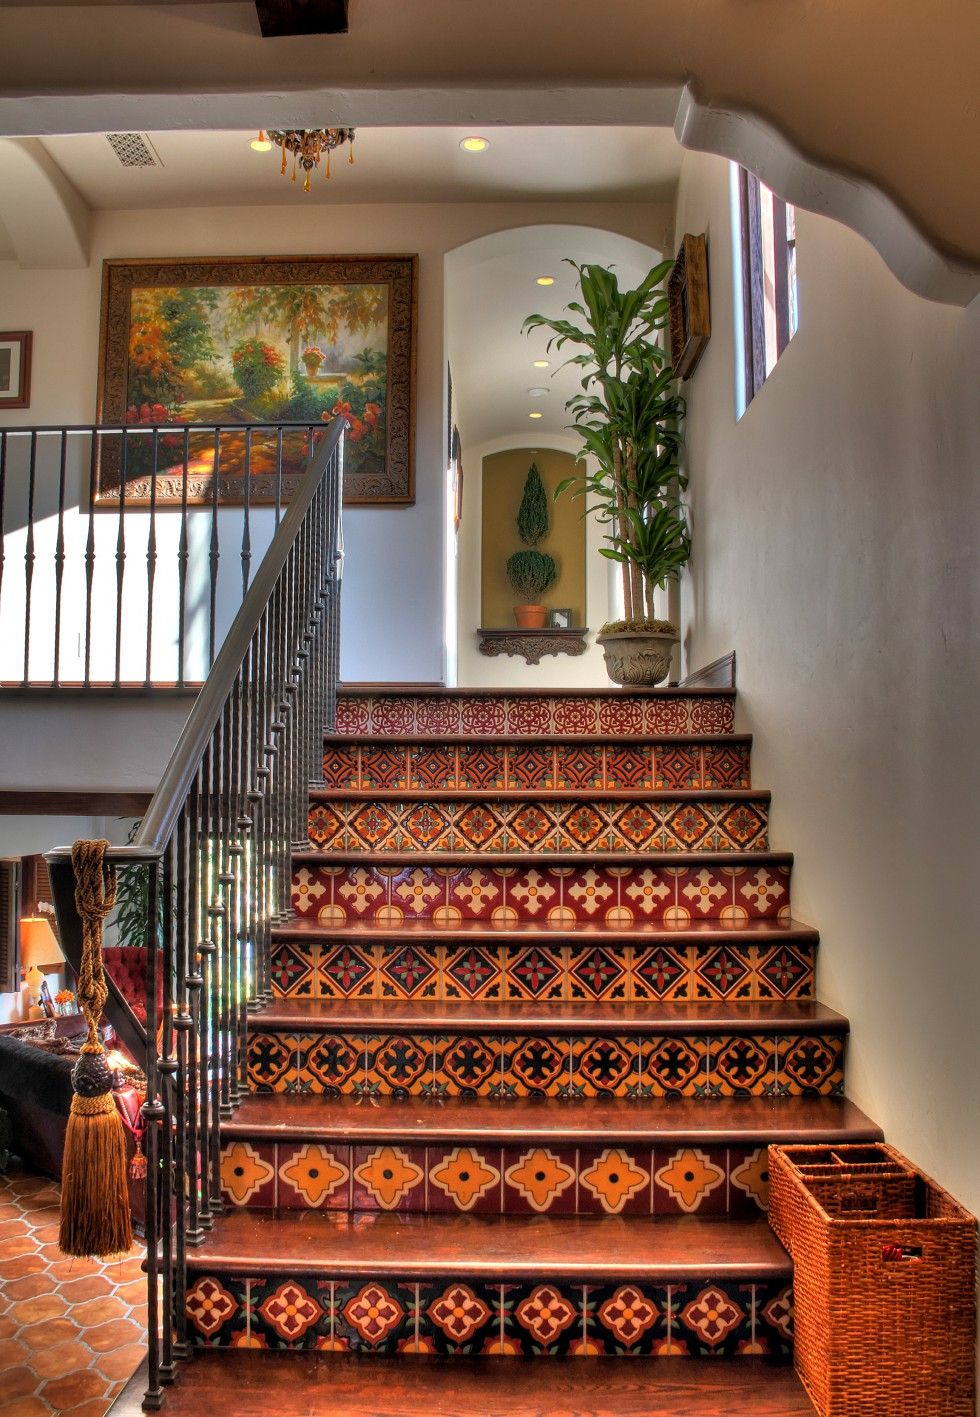 Living room mediterranean staircase los angeles by la design - South Bay Digs Sweet Digs Architecture Interior Design Old Los Angeles